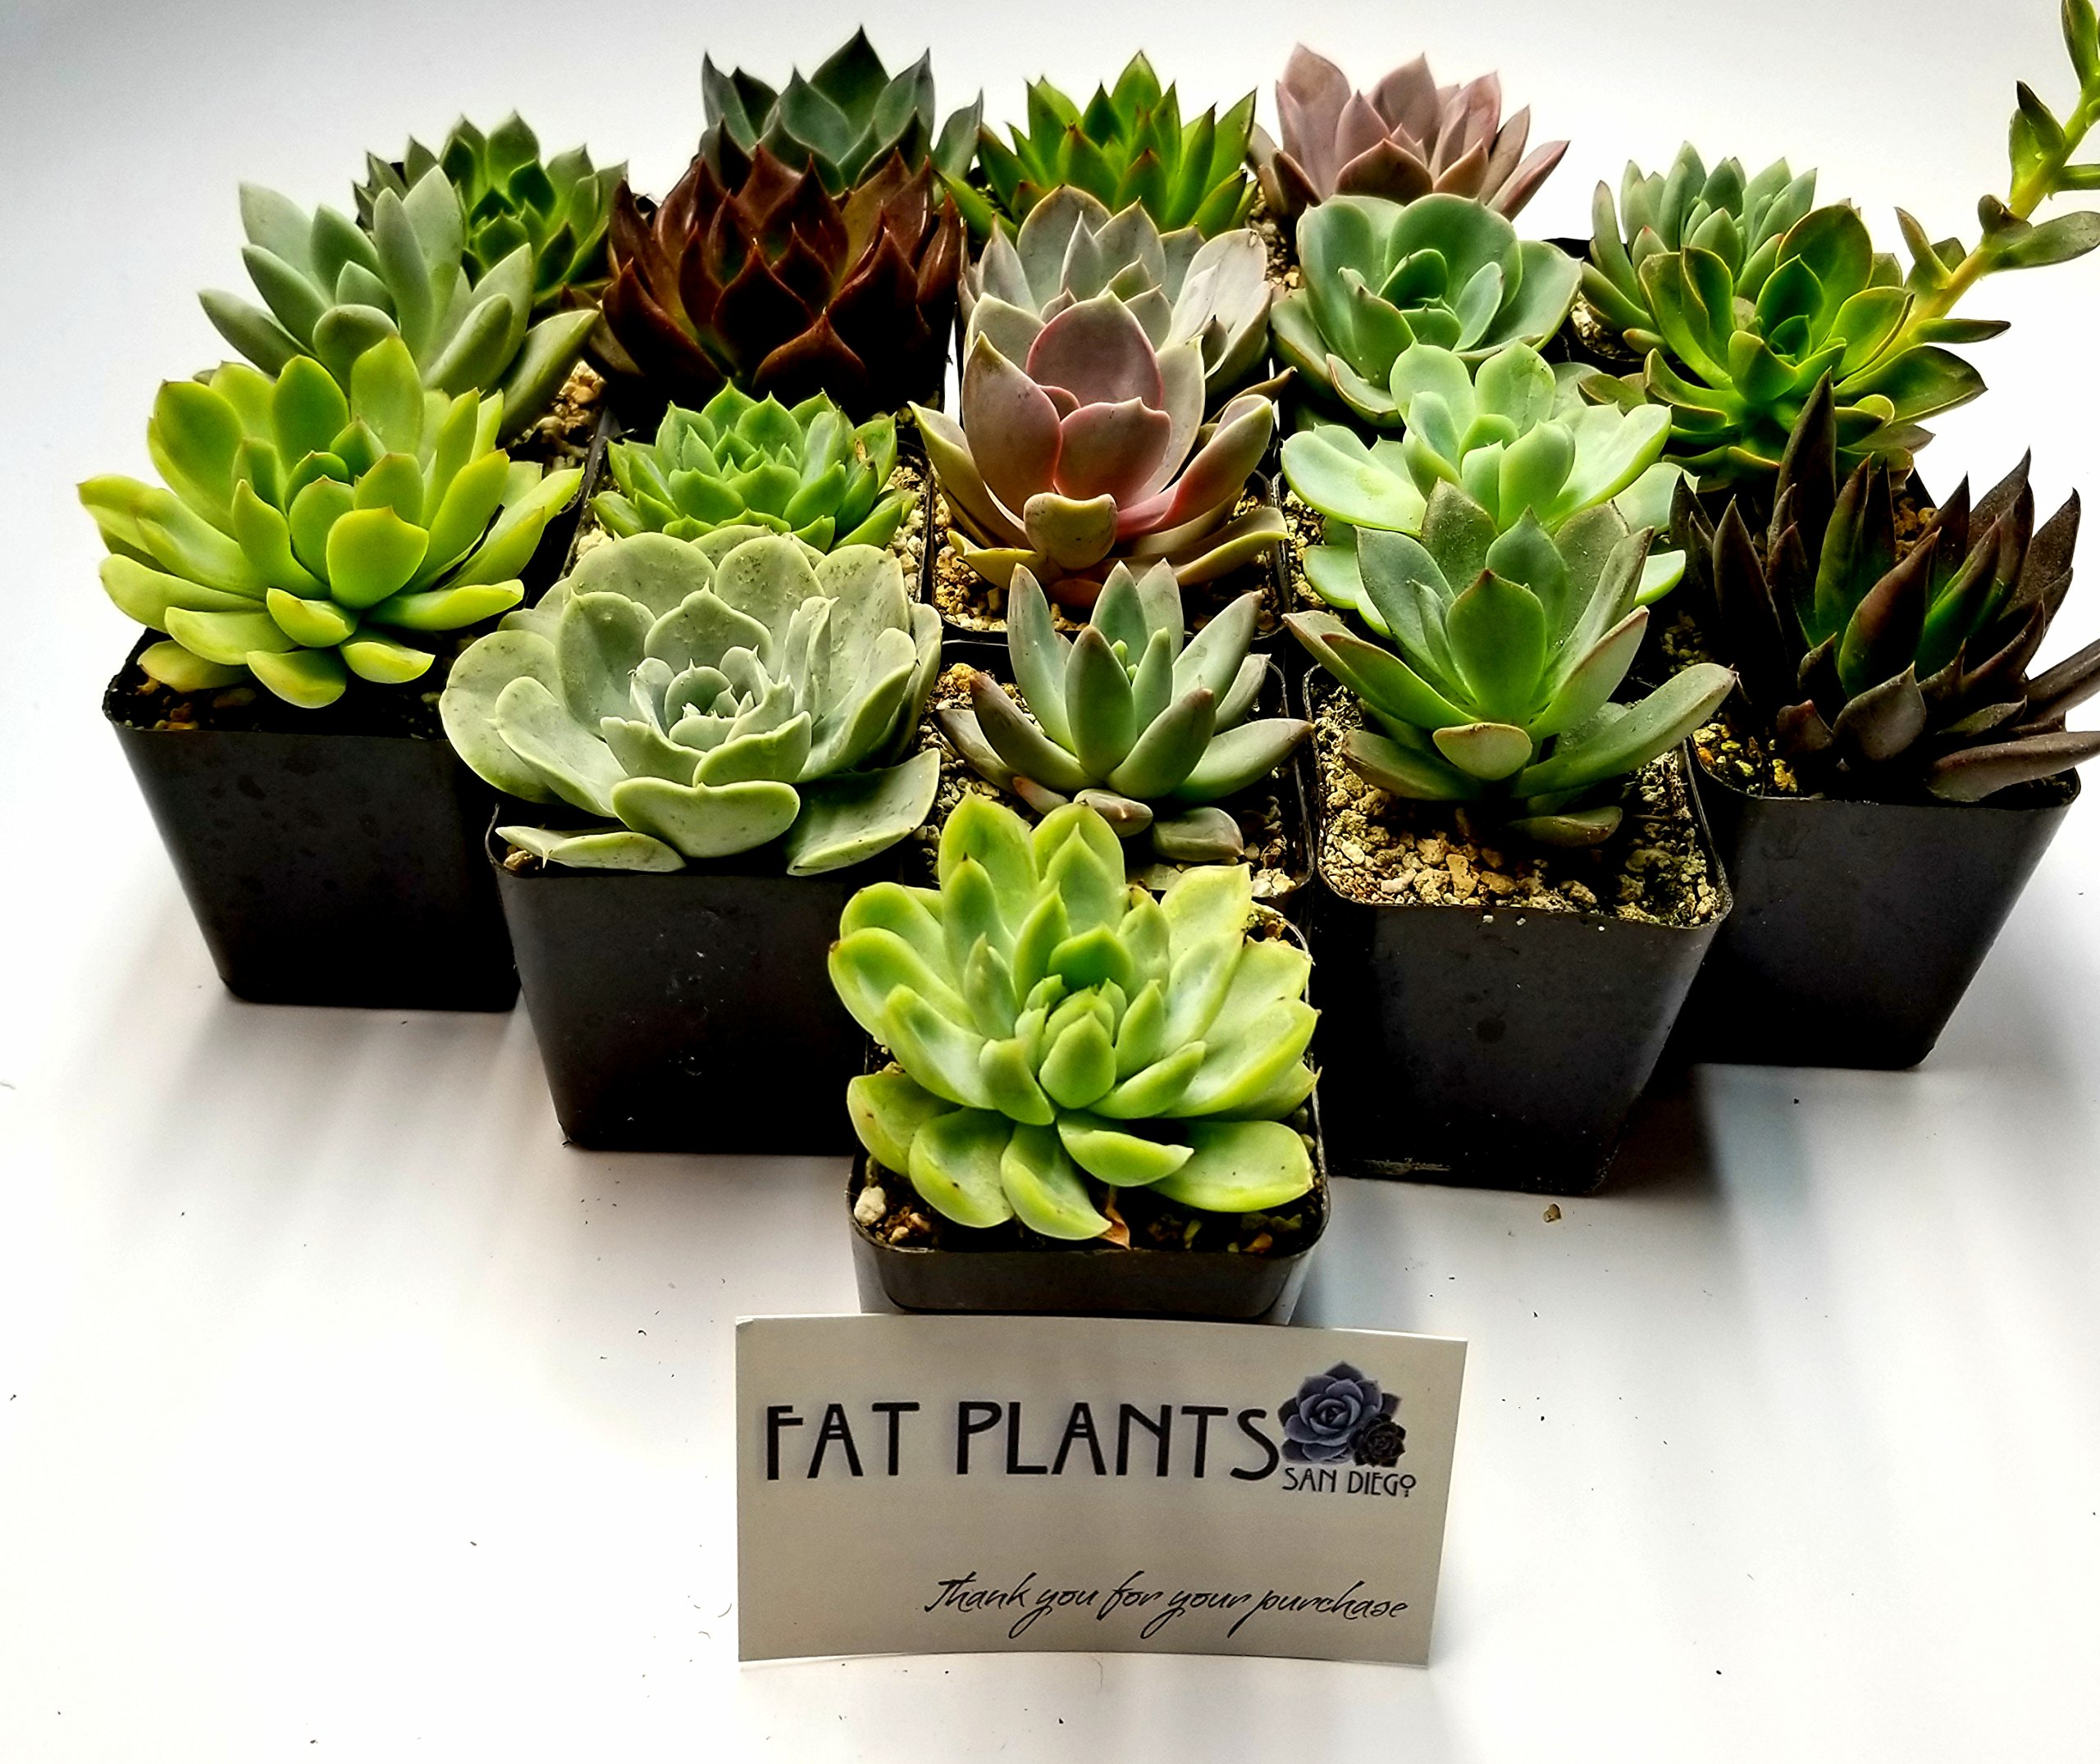 Fat Plants San Diego 2.5 Inch Wedding Rosette Succulent Plants (12) by Fat Plants San Diego (Image #2)